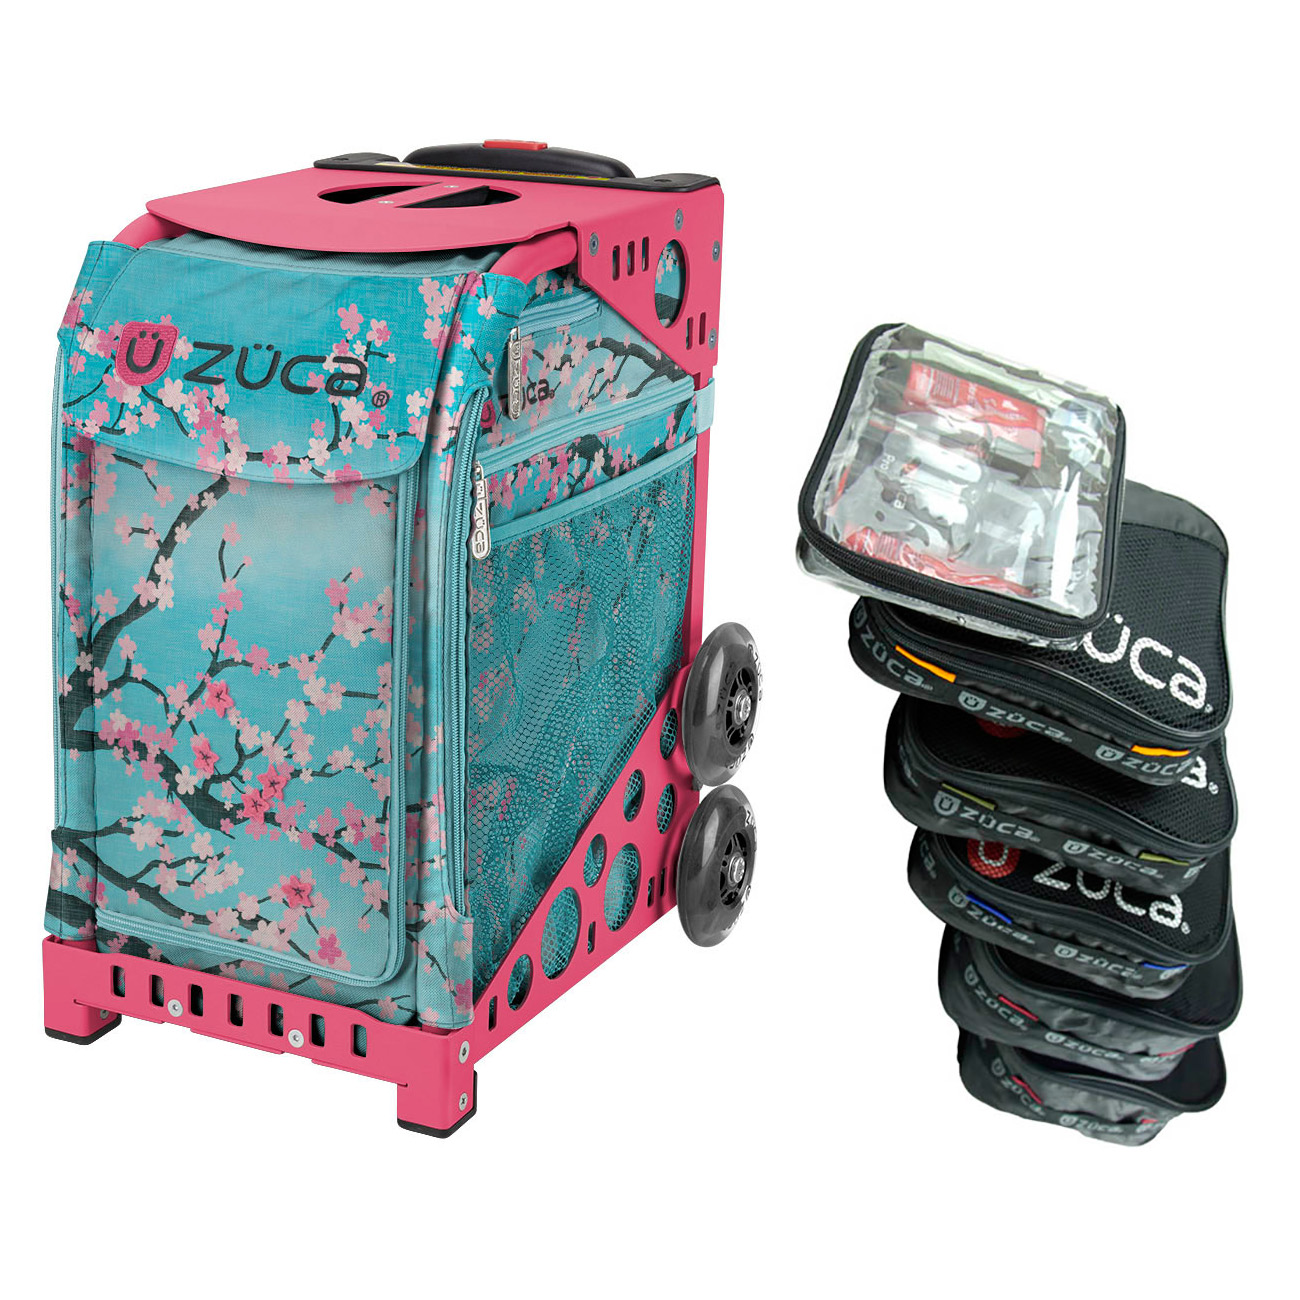 Zuca Hanami Sport Insert Bag with Pink Frame and Organization Packing Pouch Set